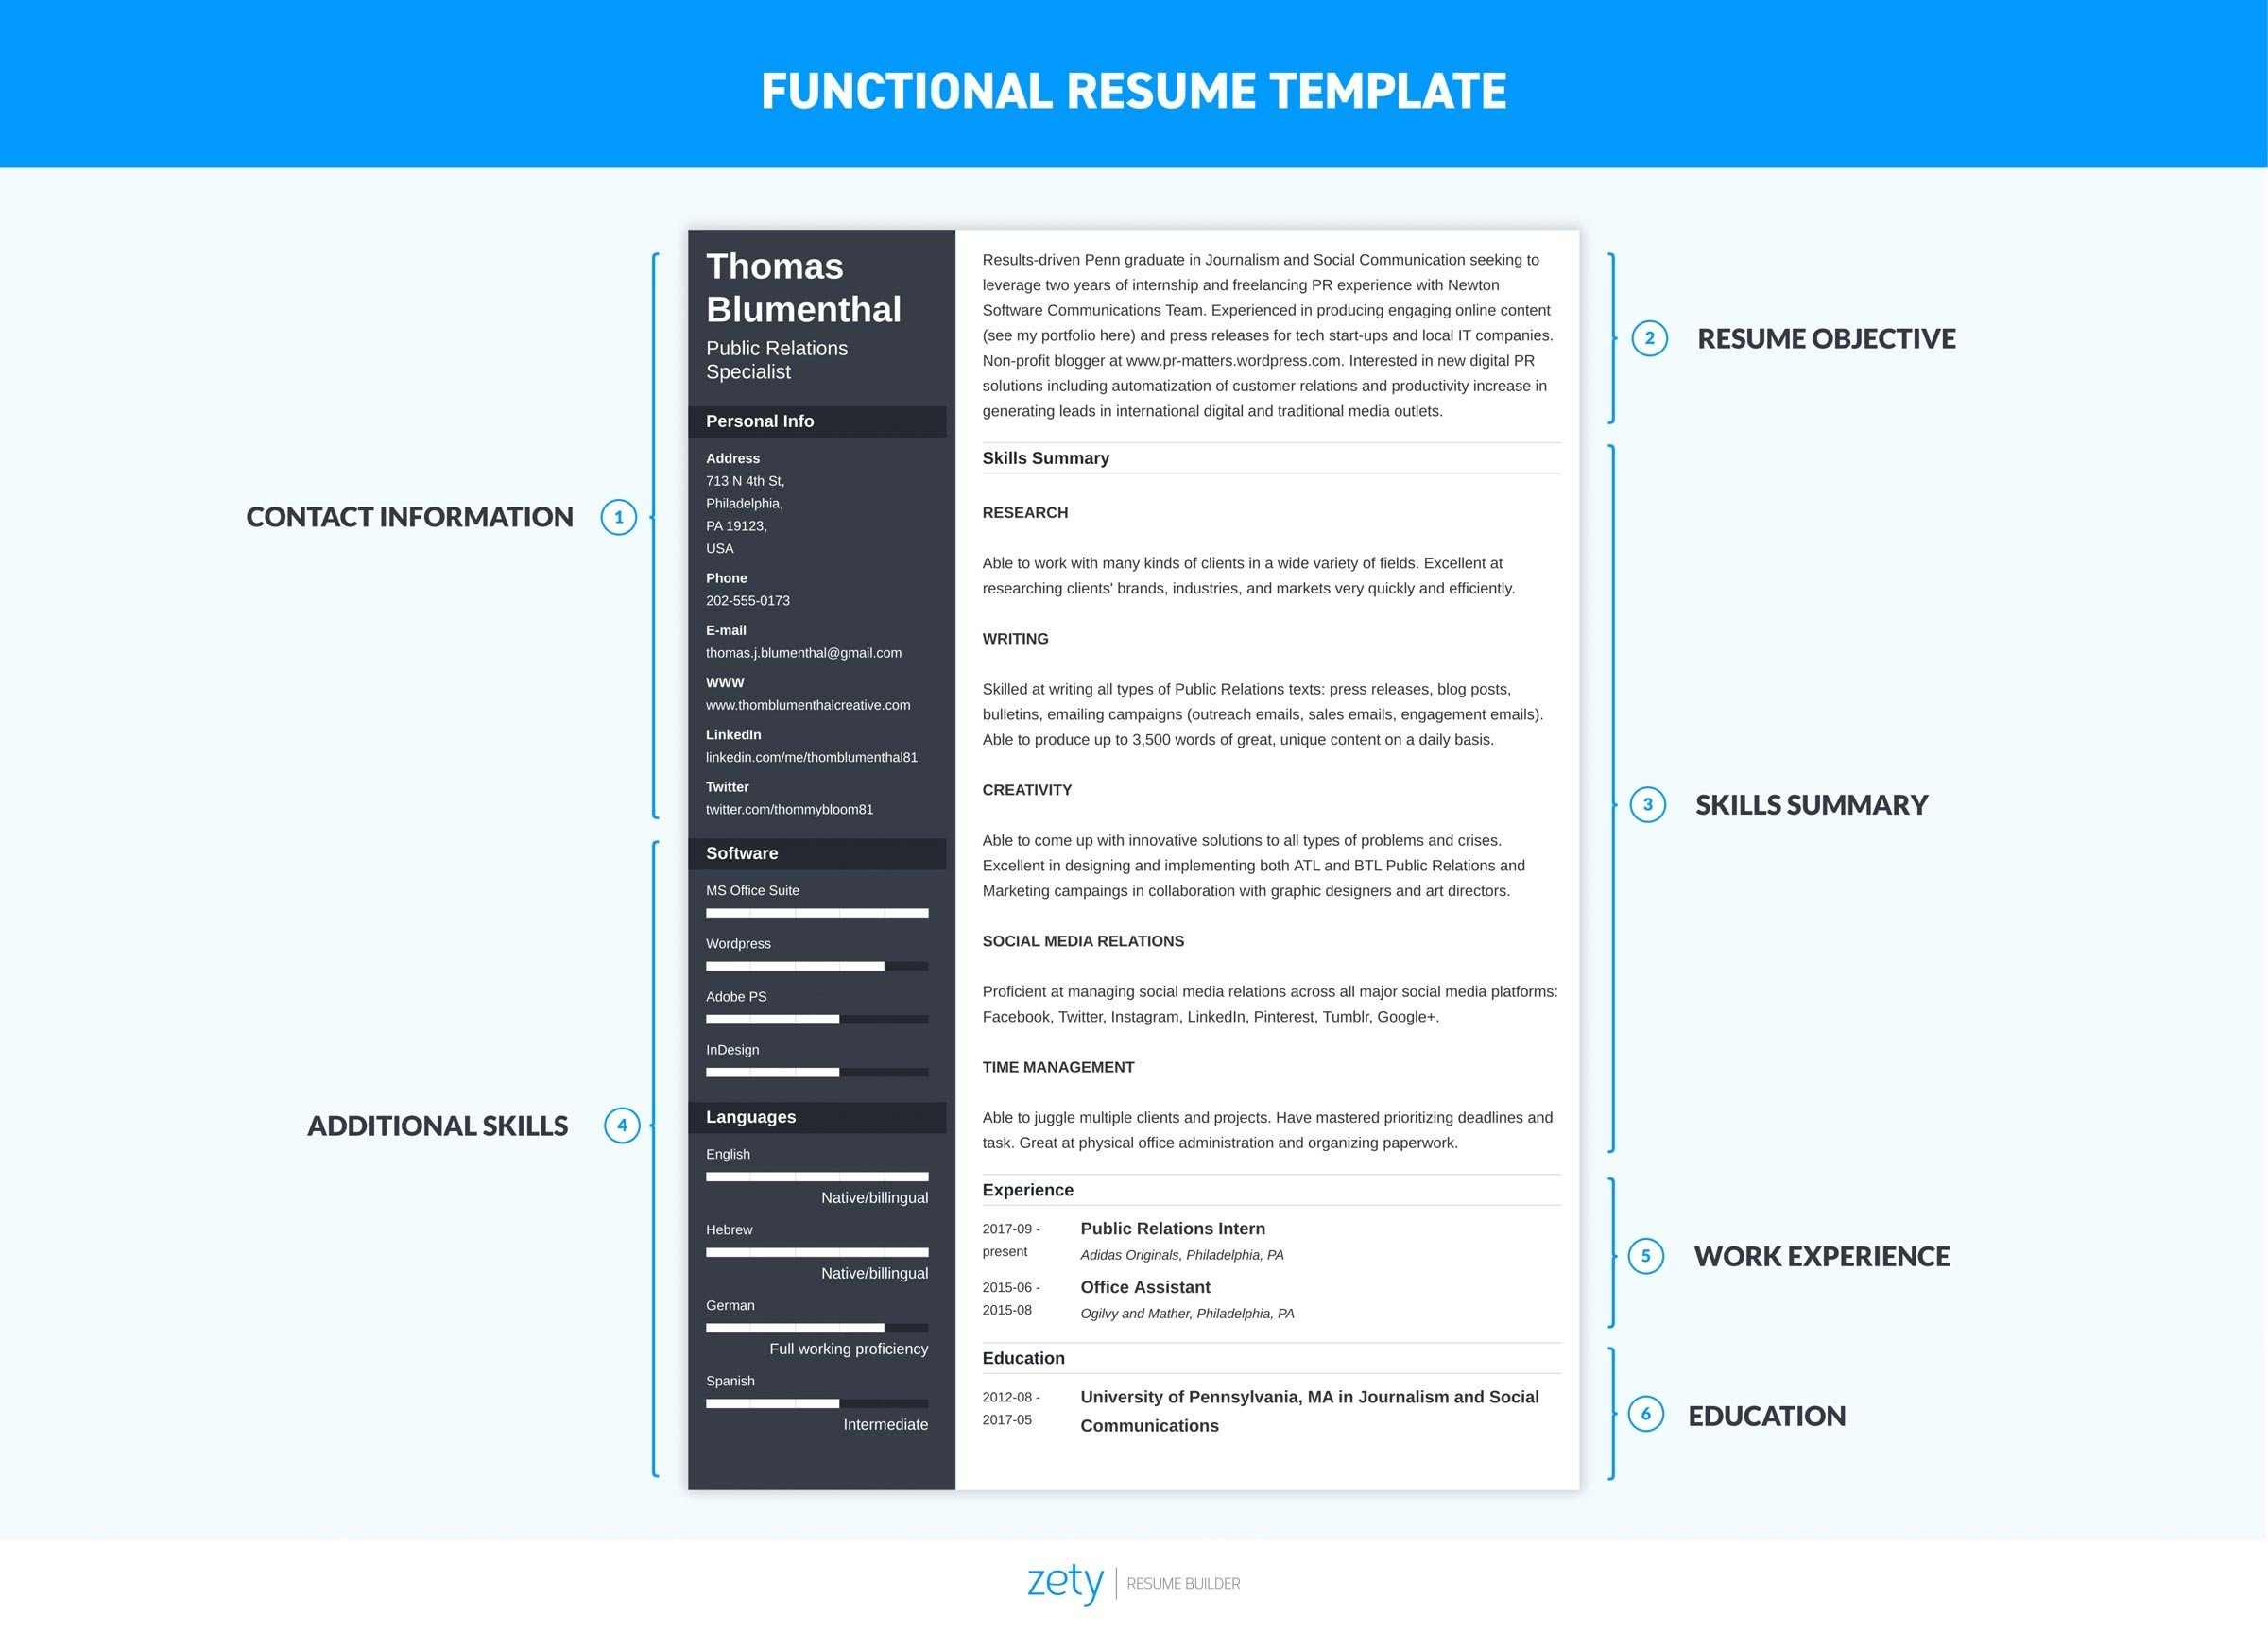 functional resume examples skills based templates best template computer science graduate Resume Best Functional Resume Templates